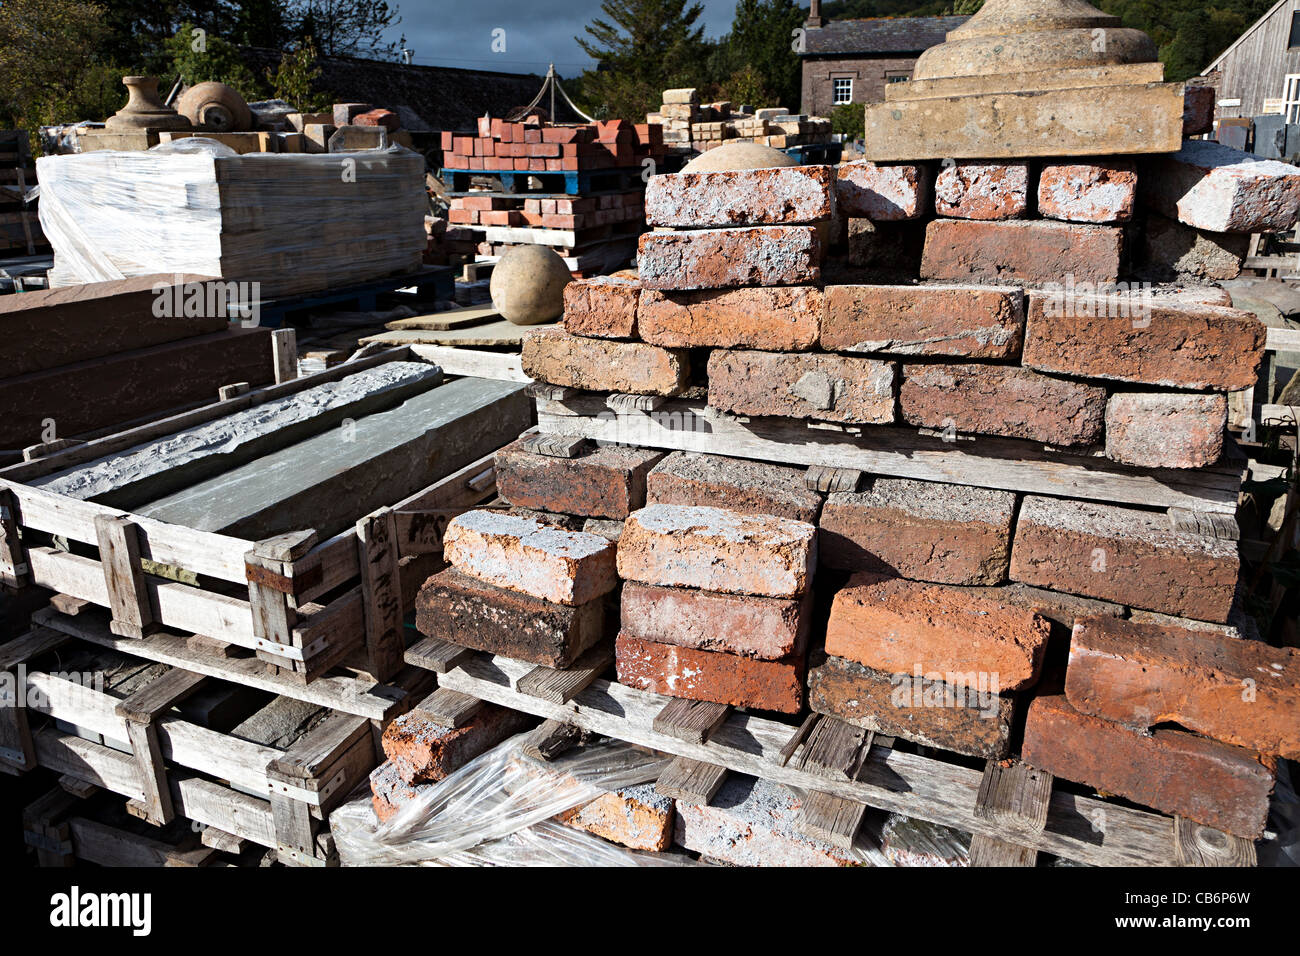 Old bricks in architectural salvage yard Wales UK - Stock Image